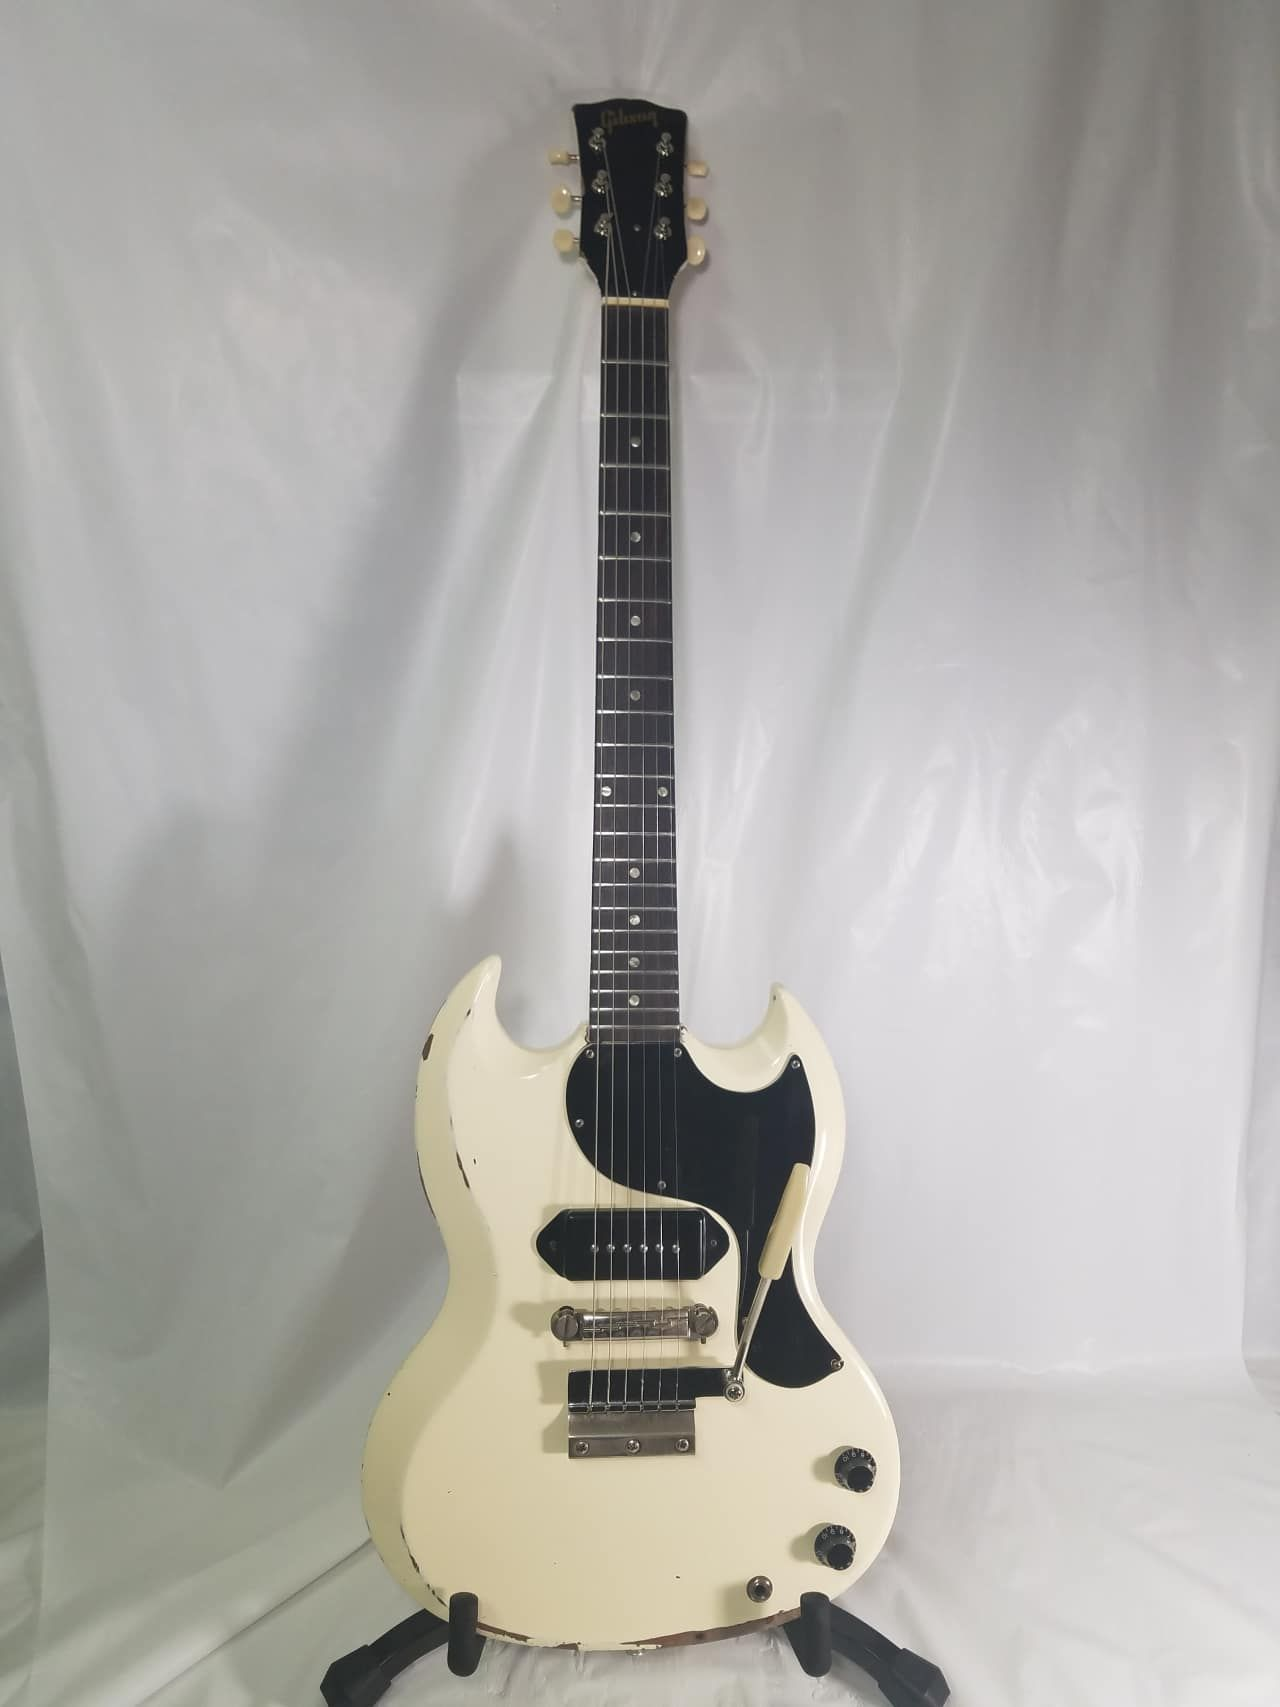 1965 Gibson SG in Polaris whiteWeight 6 6 lbsThis guitar